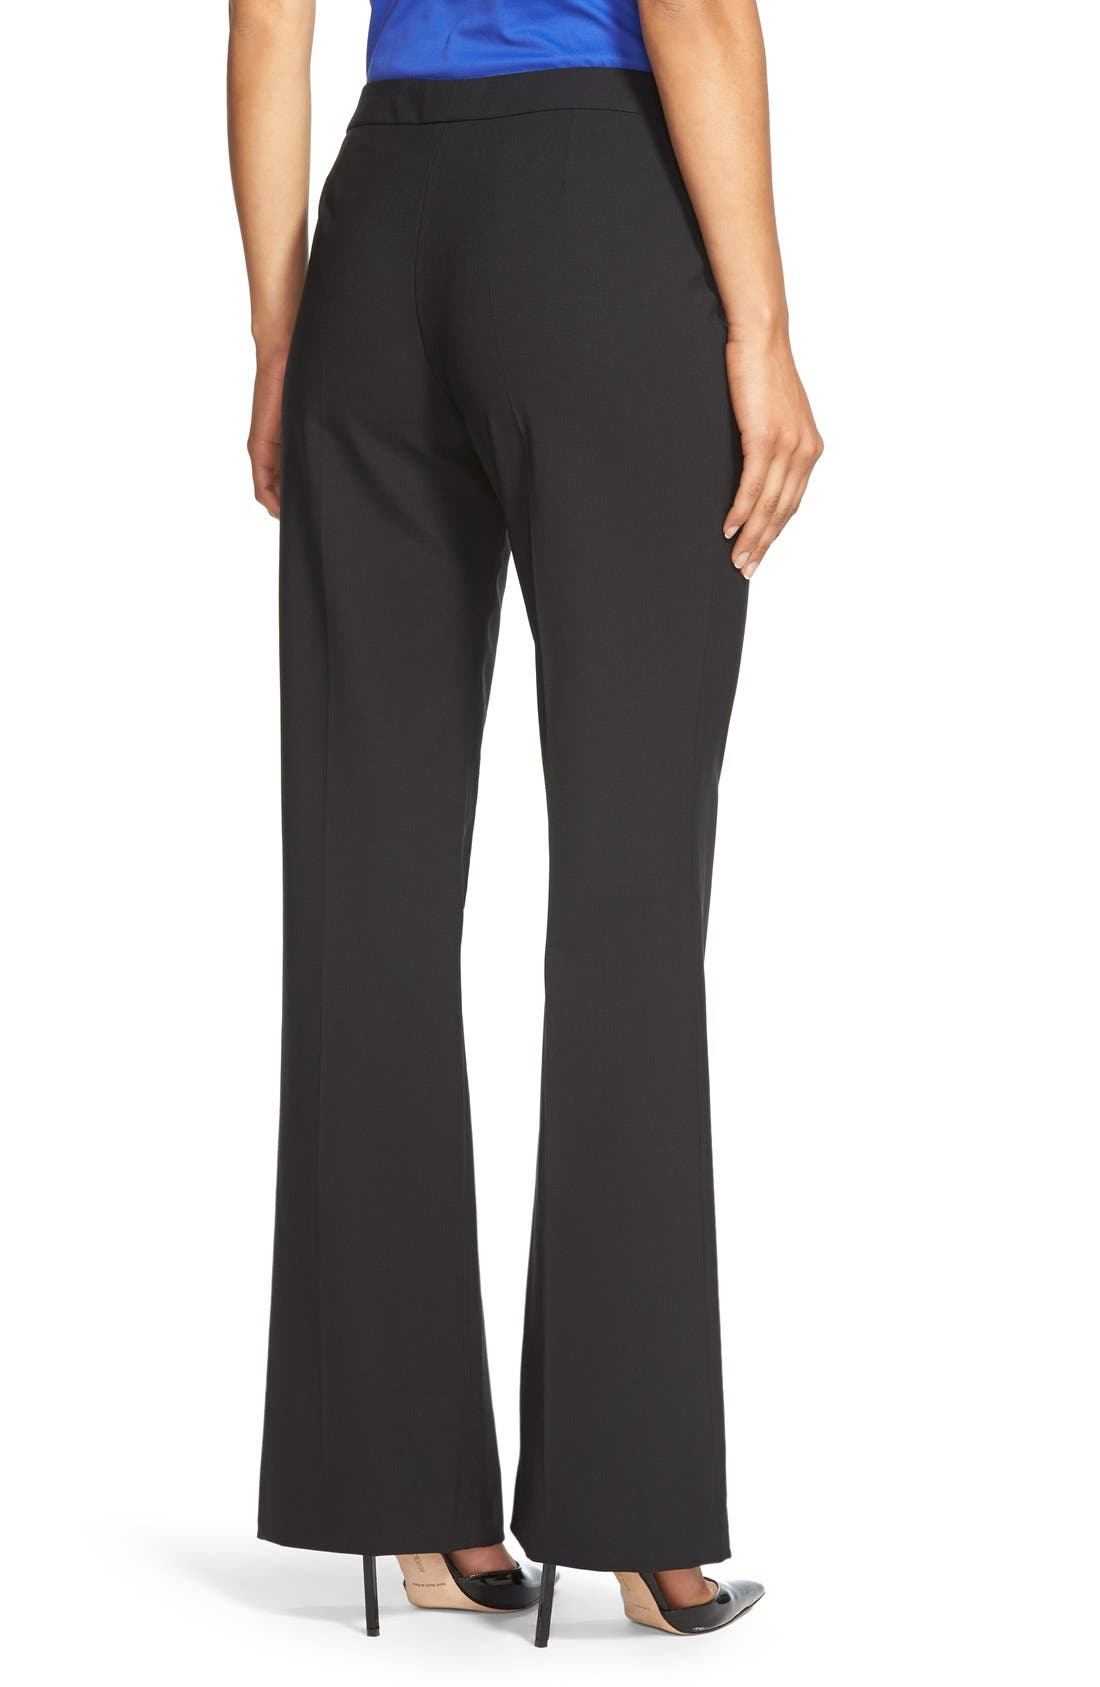 Tulea Side Zip Tropical Stretch Wool Trousers,                             Alternate thumbnail 9, color,                             BLACK